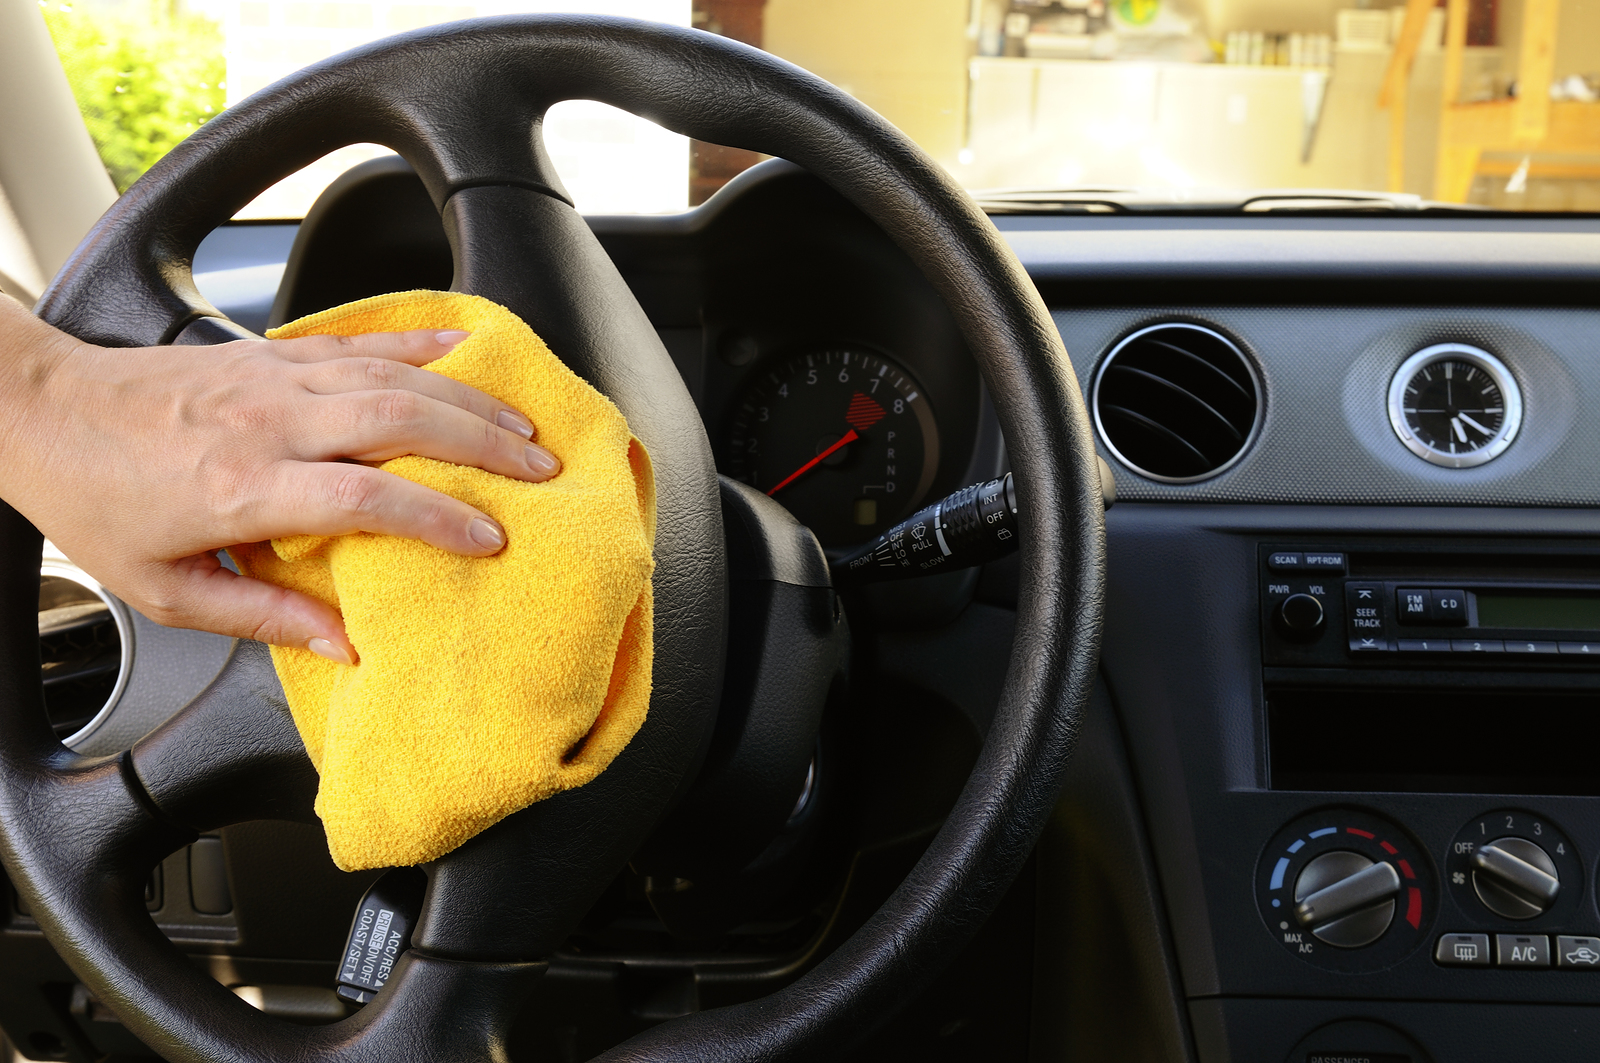 Auto Detailing:  It's Spring Cleaning for Your Vehicle